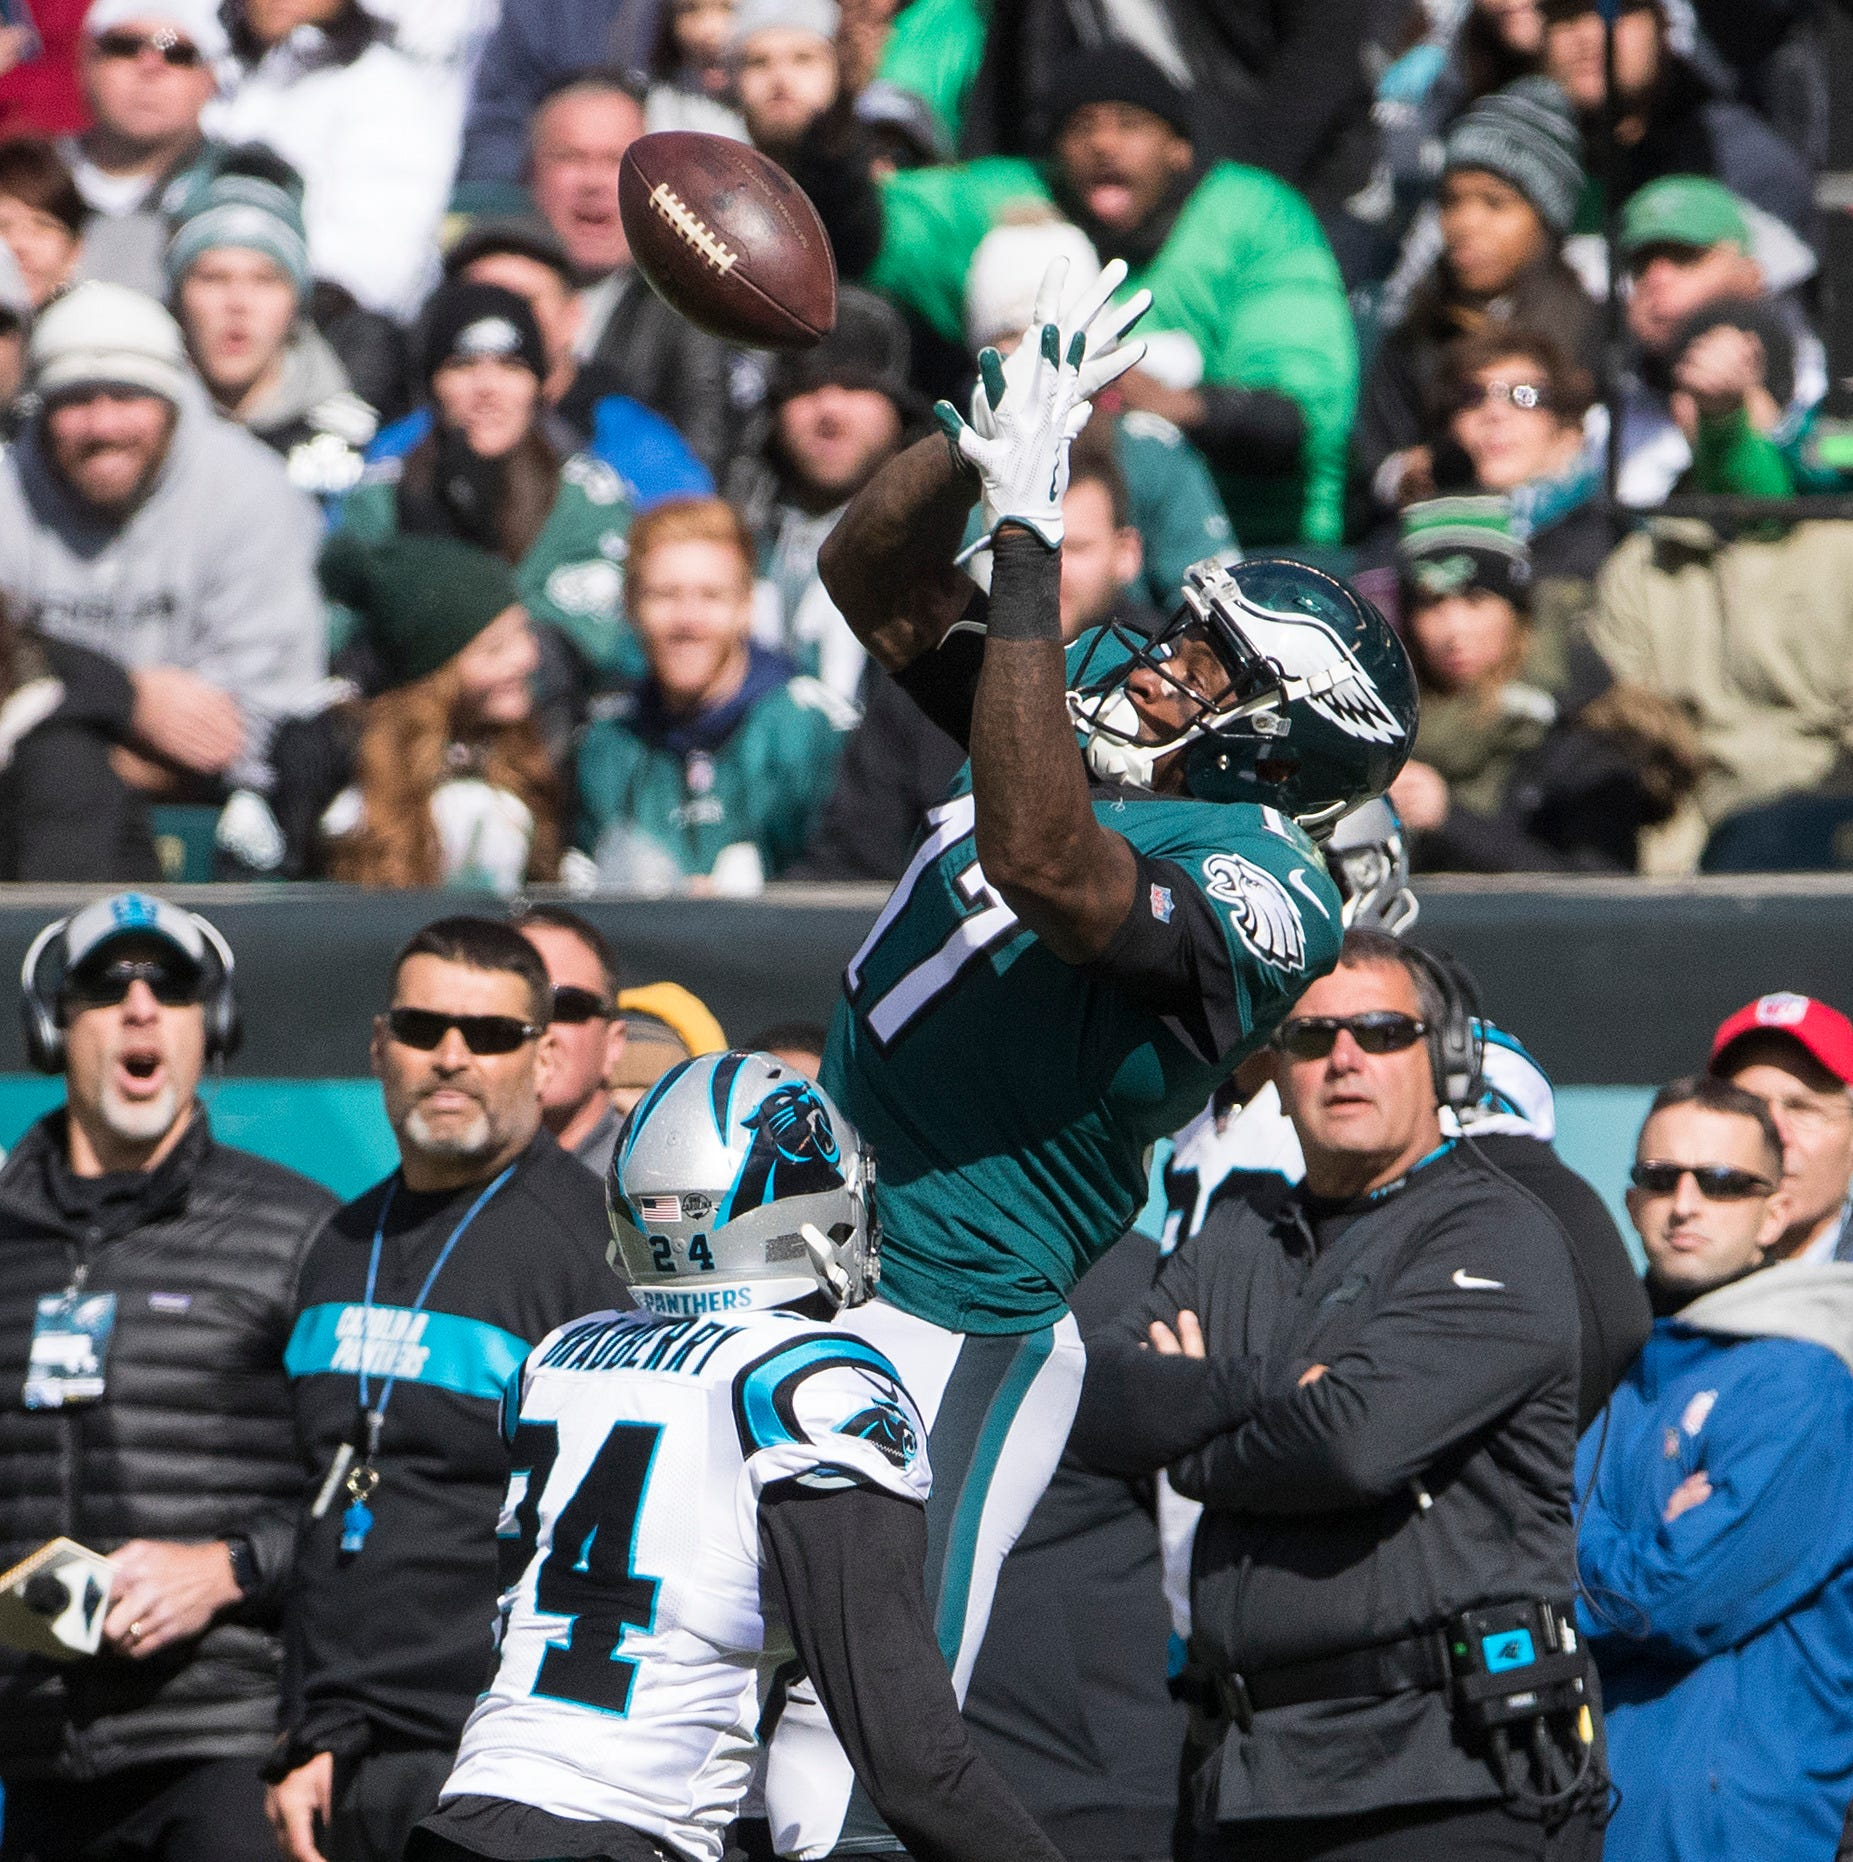 Deja vu: Eagles blow a big lead, lose to Panthers as drive comes up short at the end